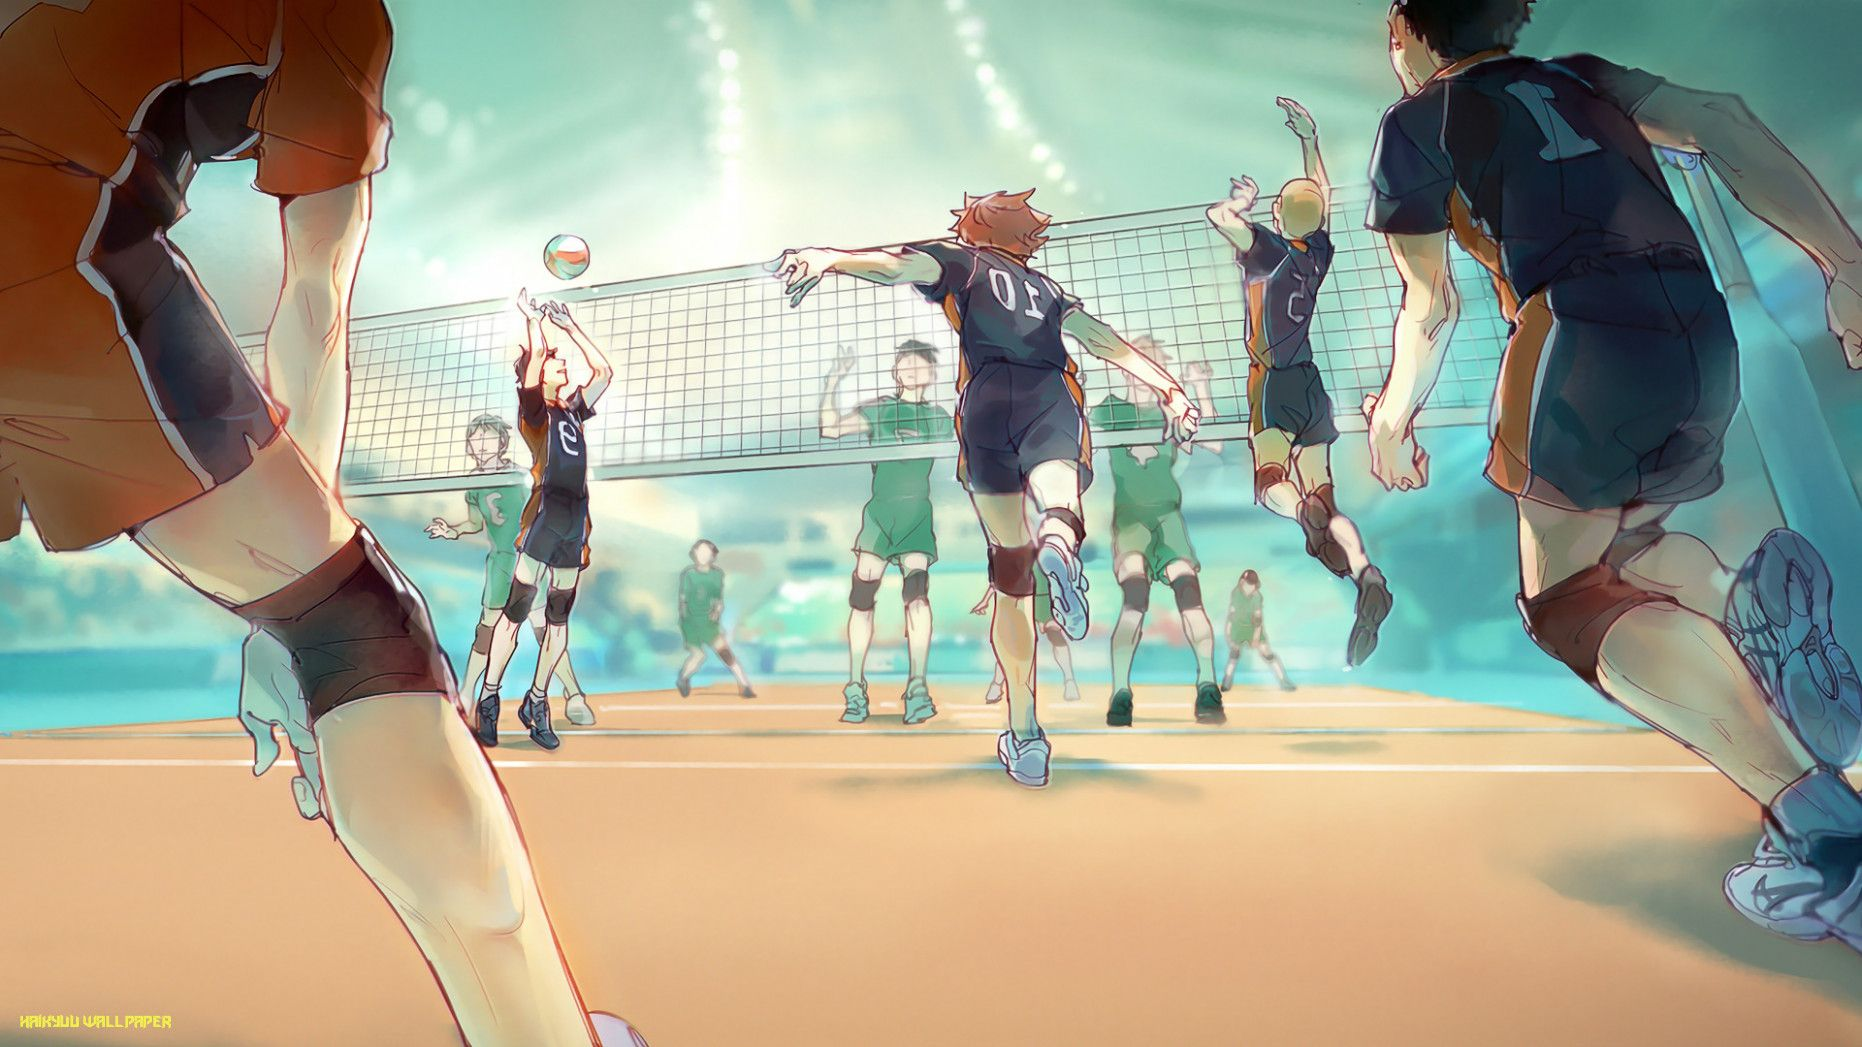 Reasons Why Haikyuu Wallpaper Is Getting More Popular In The Past Decade In 2020 Haikyuu Wallpaper Haikyuu Haikyuu Anime